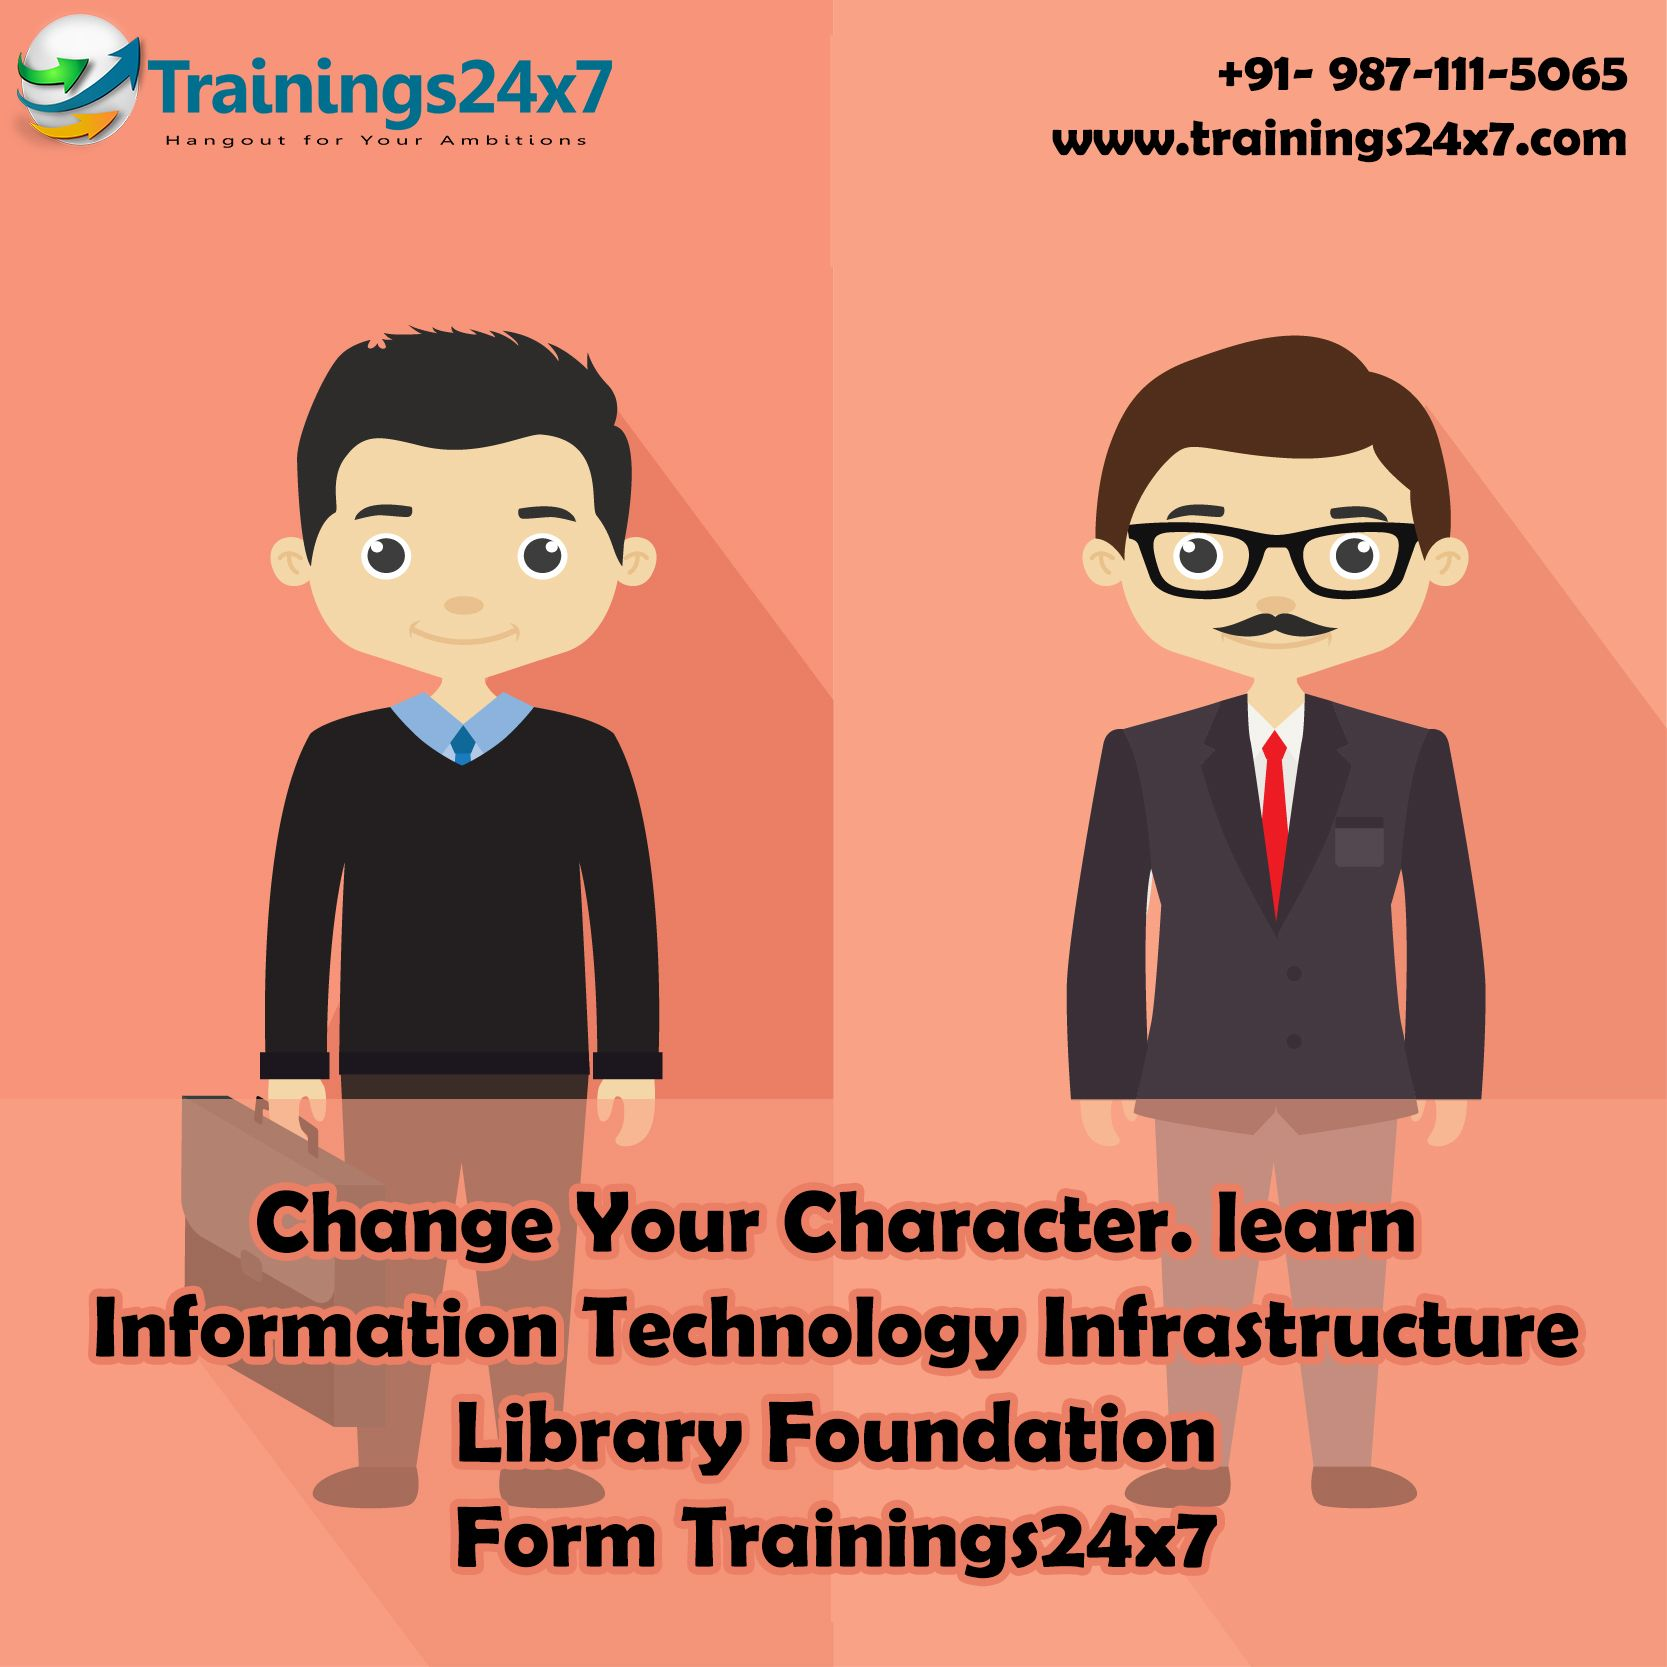 Itil training workshop learn to identify planning delivery and itil foundation training certification in delhi ncr by 15000 call 9871115065 or visit add preet vihar new delhi 110092 xflitez Choice Image